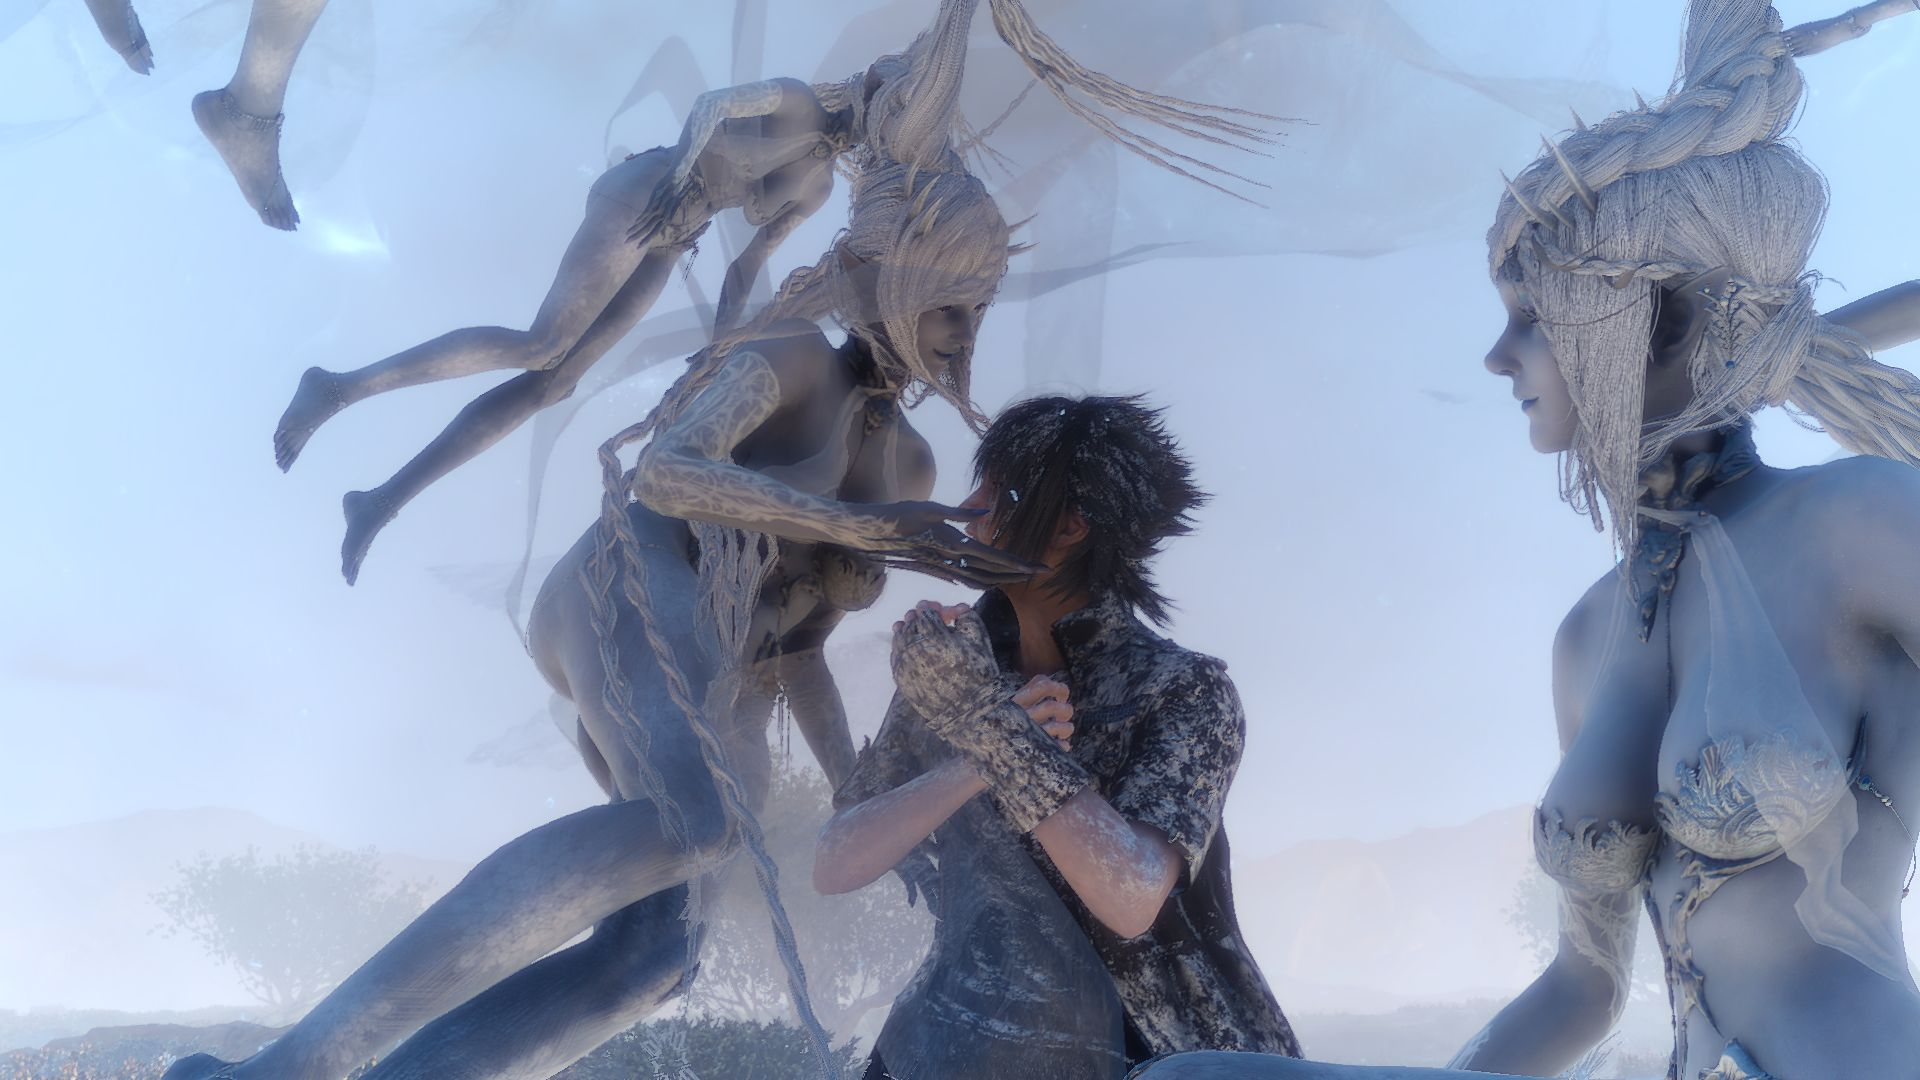 Mod Support for Final Fantasy XV will Not be Vetted, will be